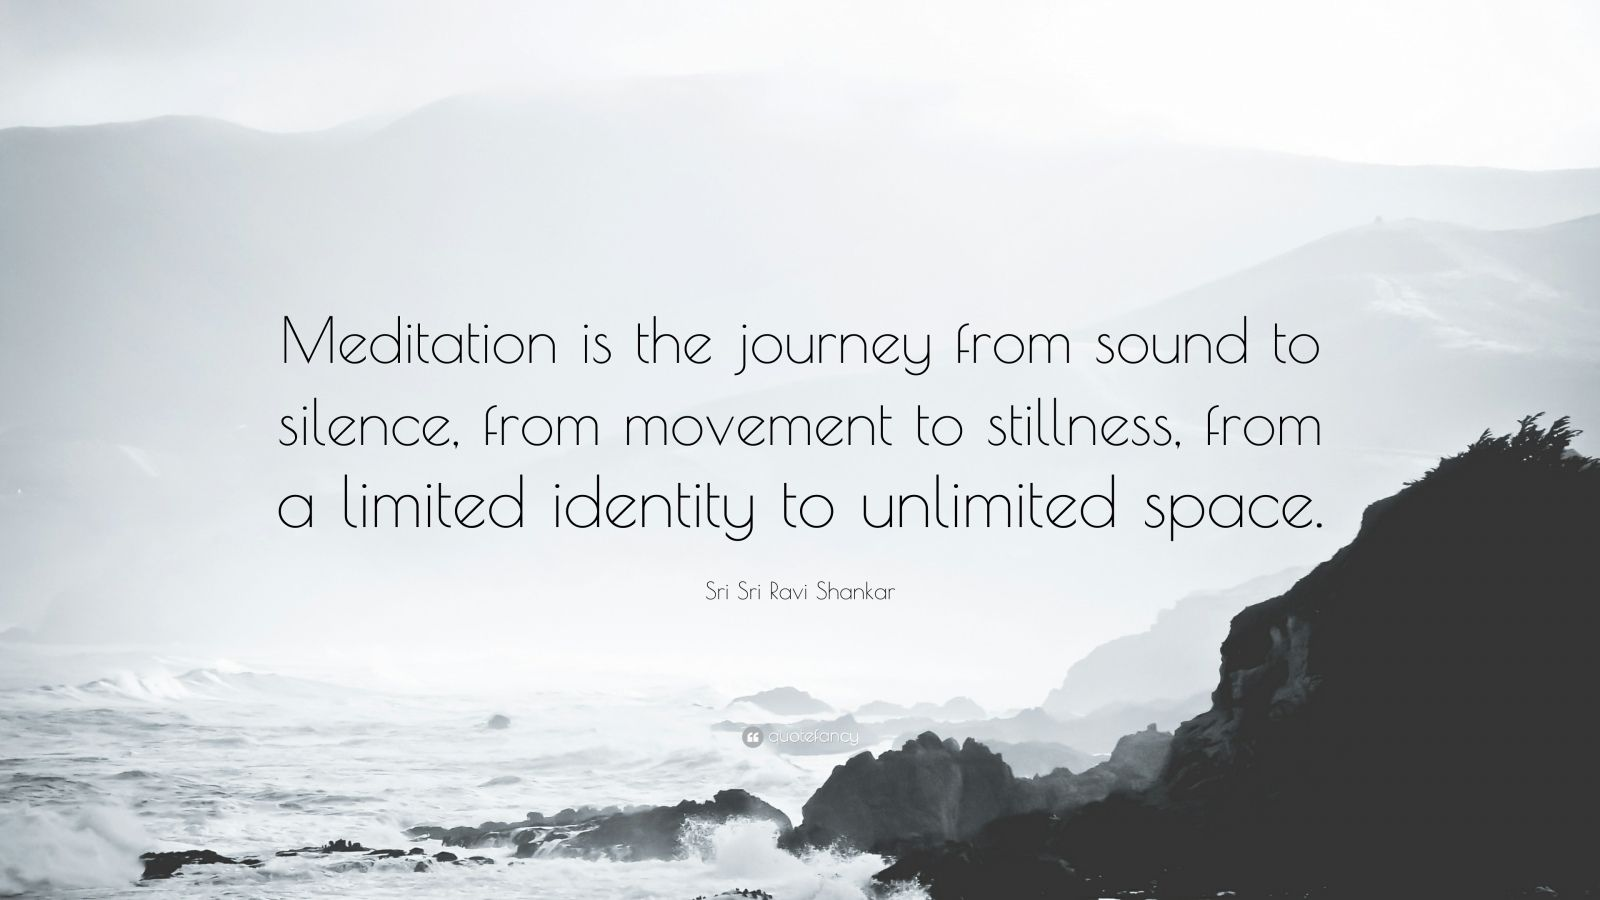 """Sri Sri Ravi Shankar Quote: """"Meditation is the journey from sound to silence, from movement to stillness, from a limited identity to unlimited space."""""""